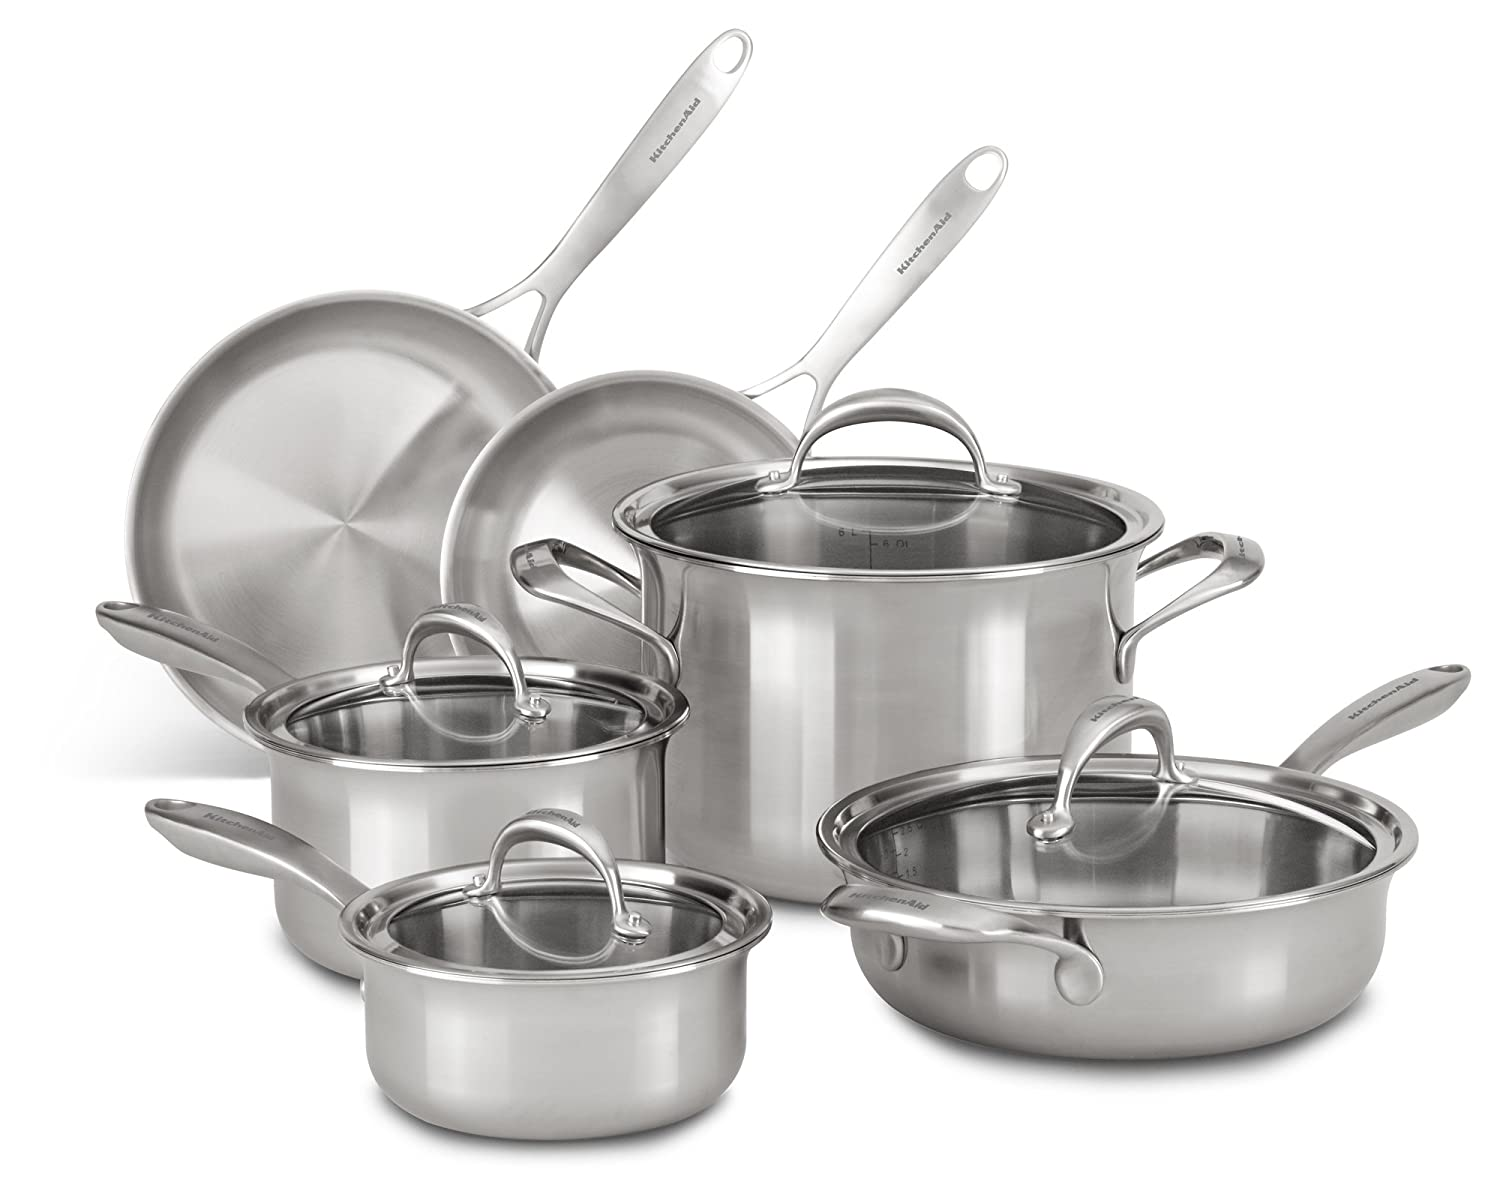 KitchenAid KC2CS10ST 5-ply Copper Core 10-Piece Set Cookware - Stainless Steel